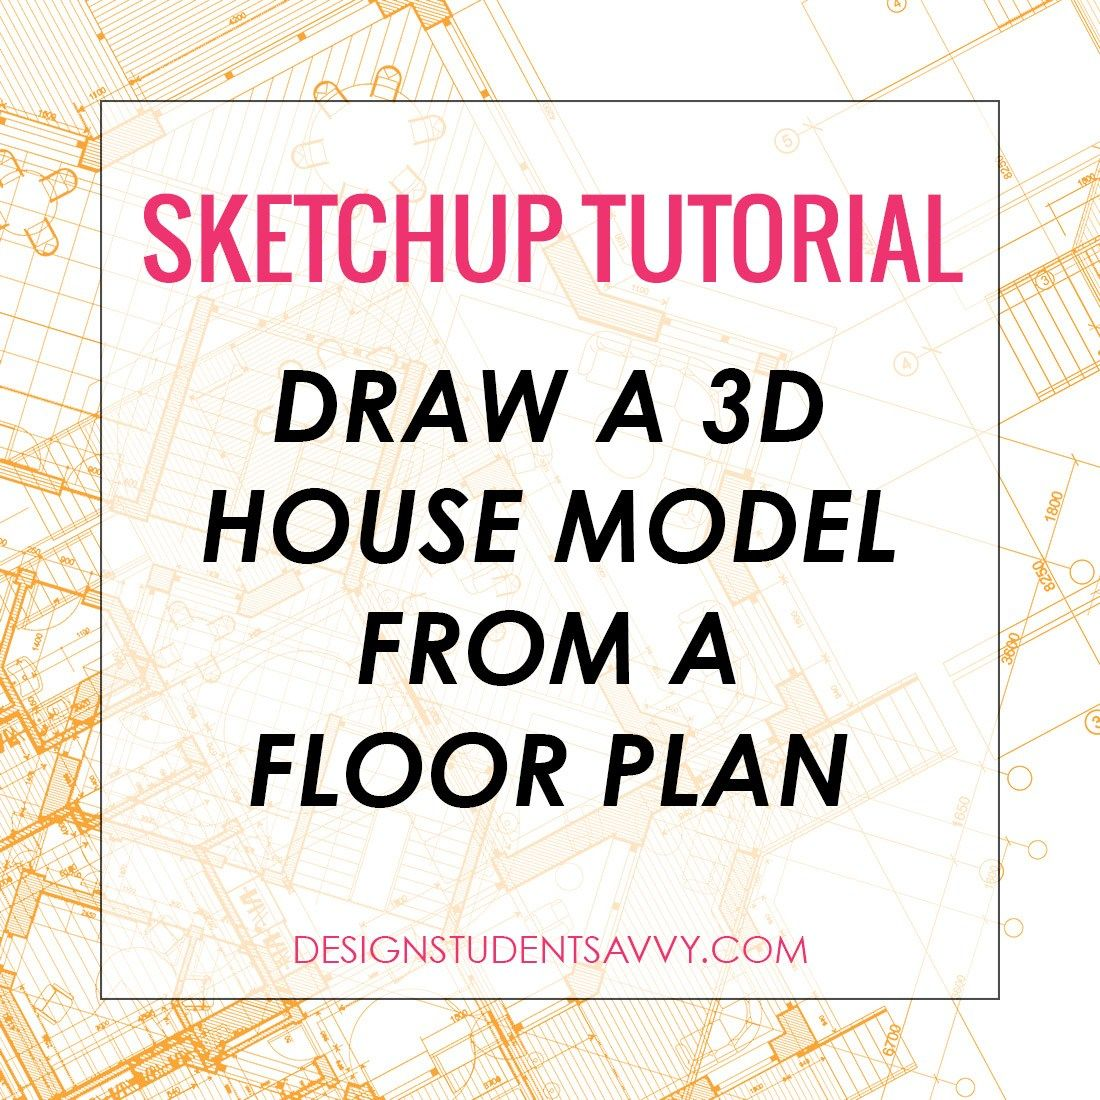 SketchUp Tutorials For Interior Designers: How To Draw A